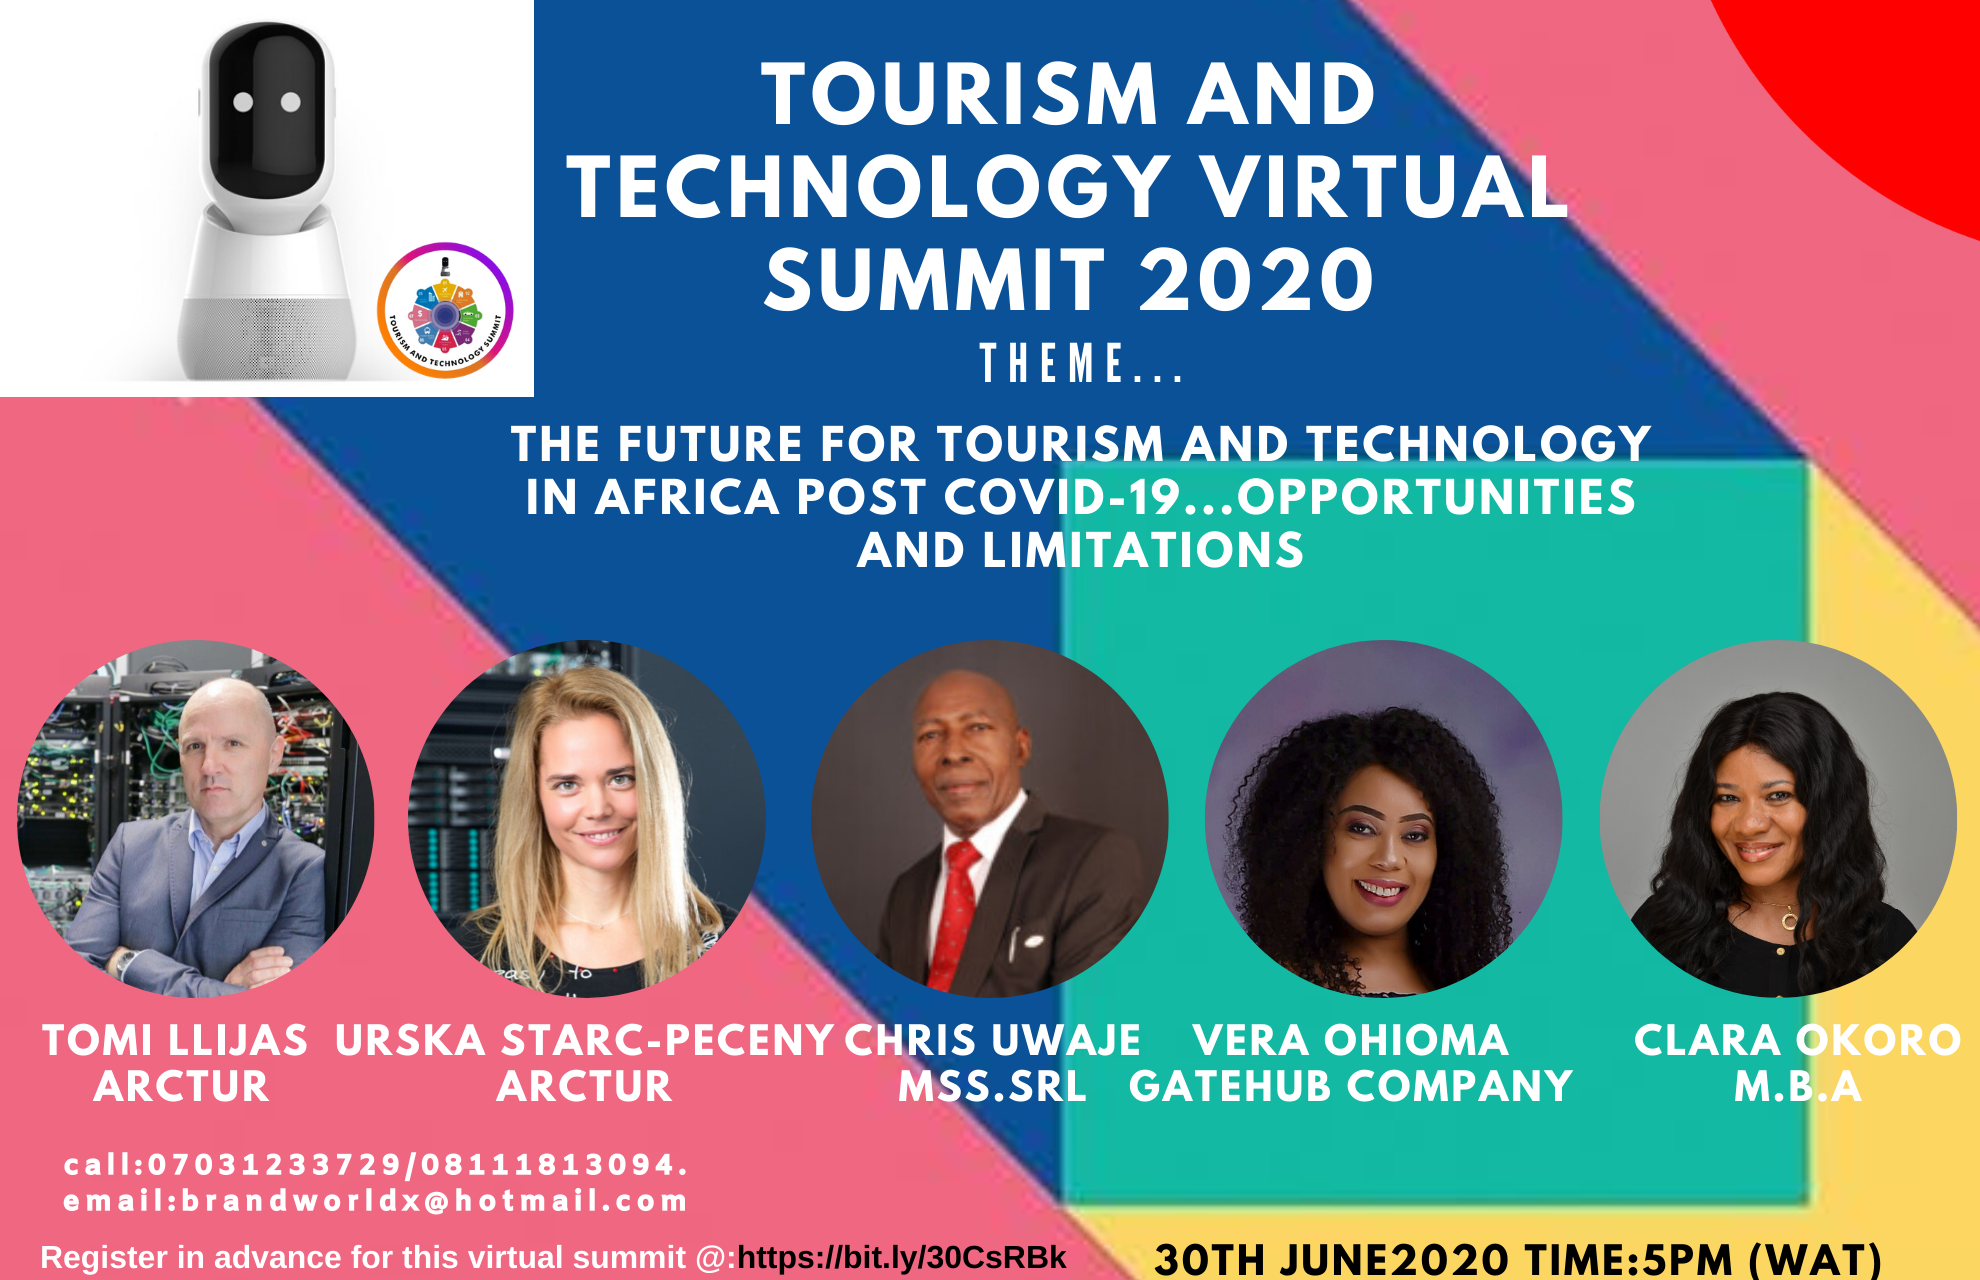 TOURISM AND TECHNOLOGY SUMMIT.COM